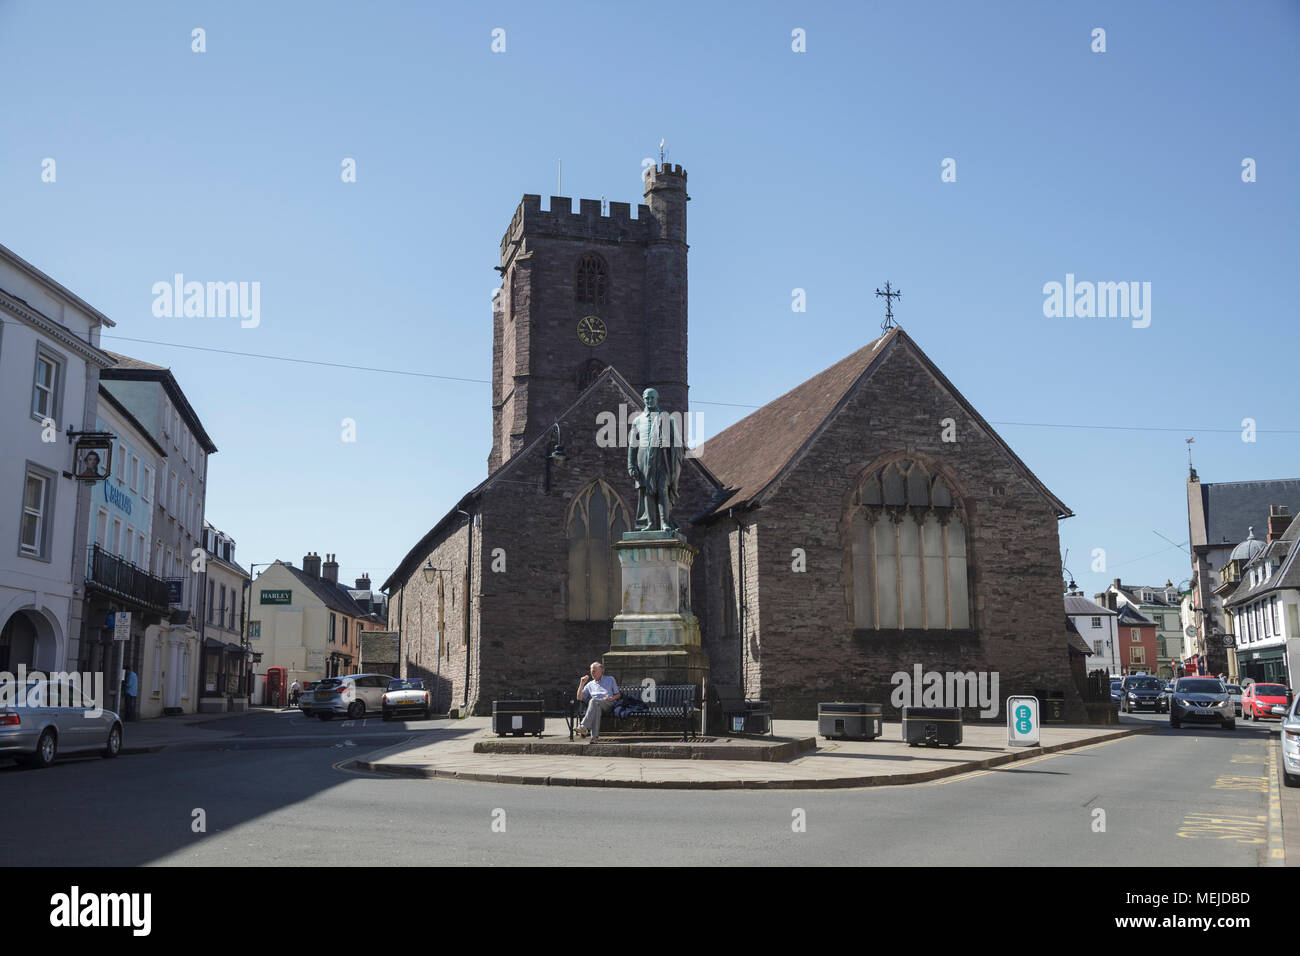 Duke of Wellington Statue in front of St Mary's Church, Brecon Powys - Stock Image